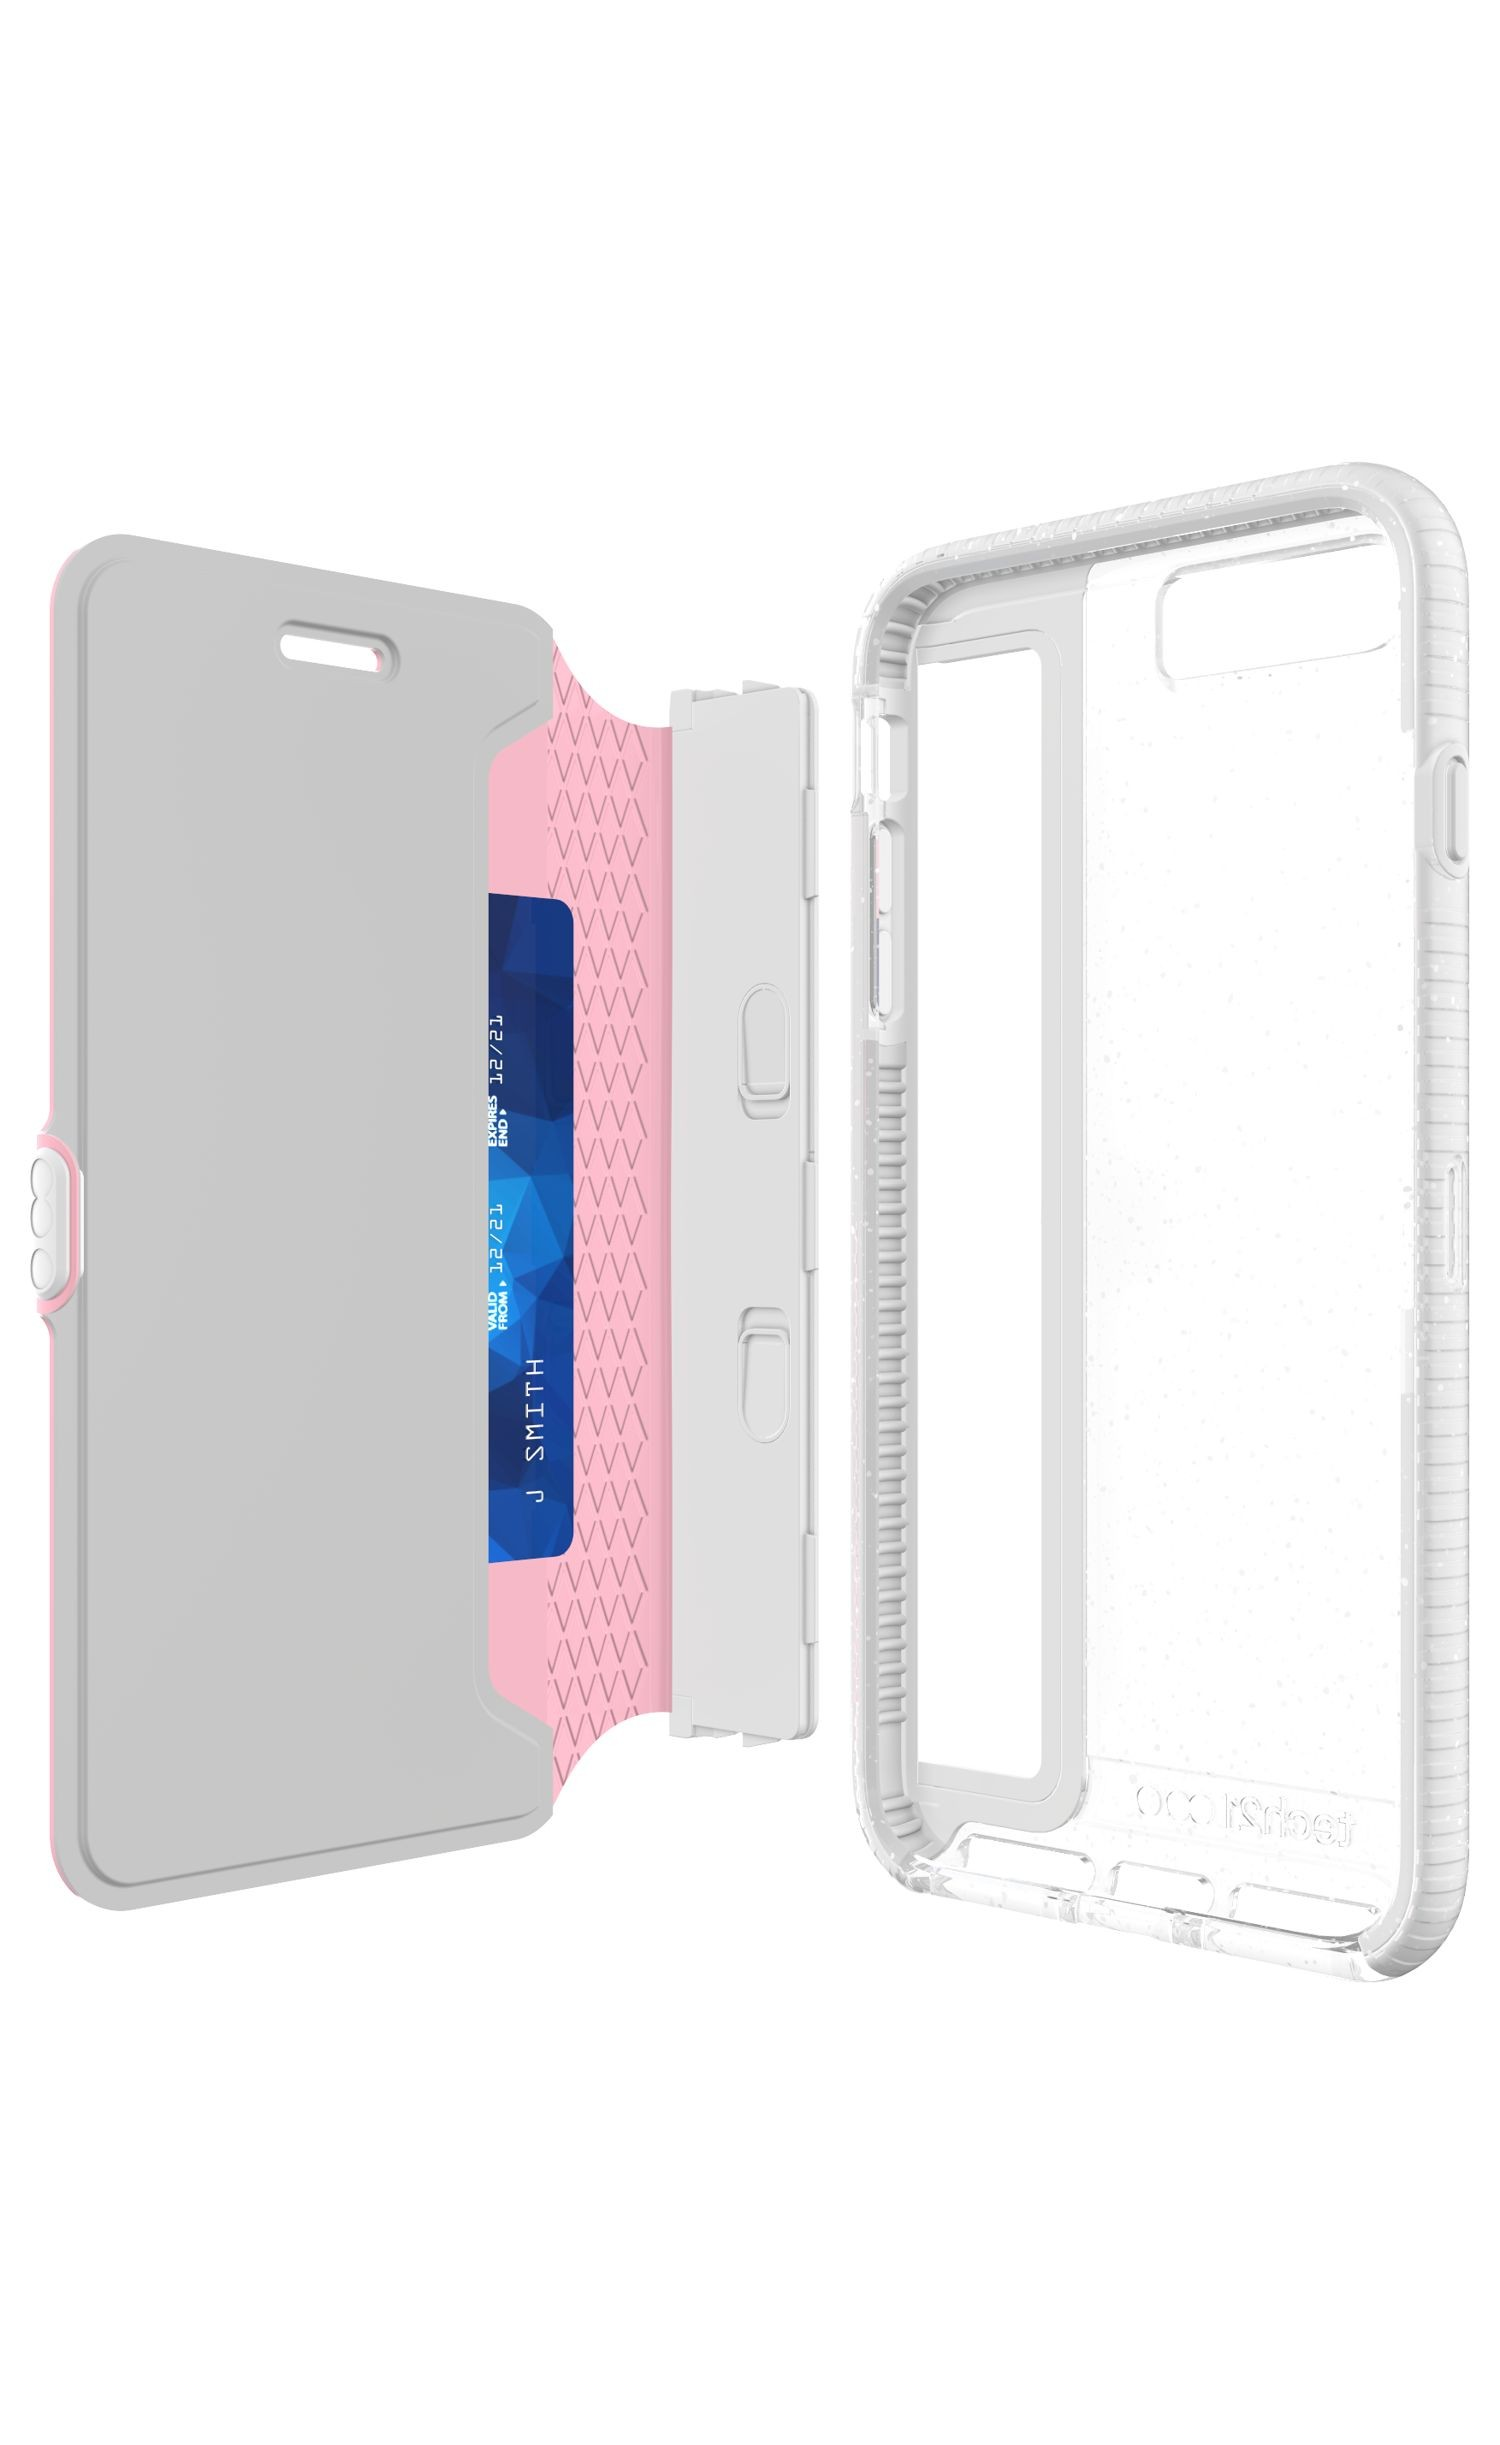 new arrival 06806 893b5 Tech21 Evo Active Edition Wallet Case for iPhone 8 Plus, 7 Plus - Pink